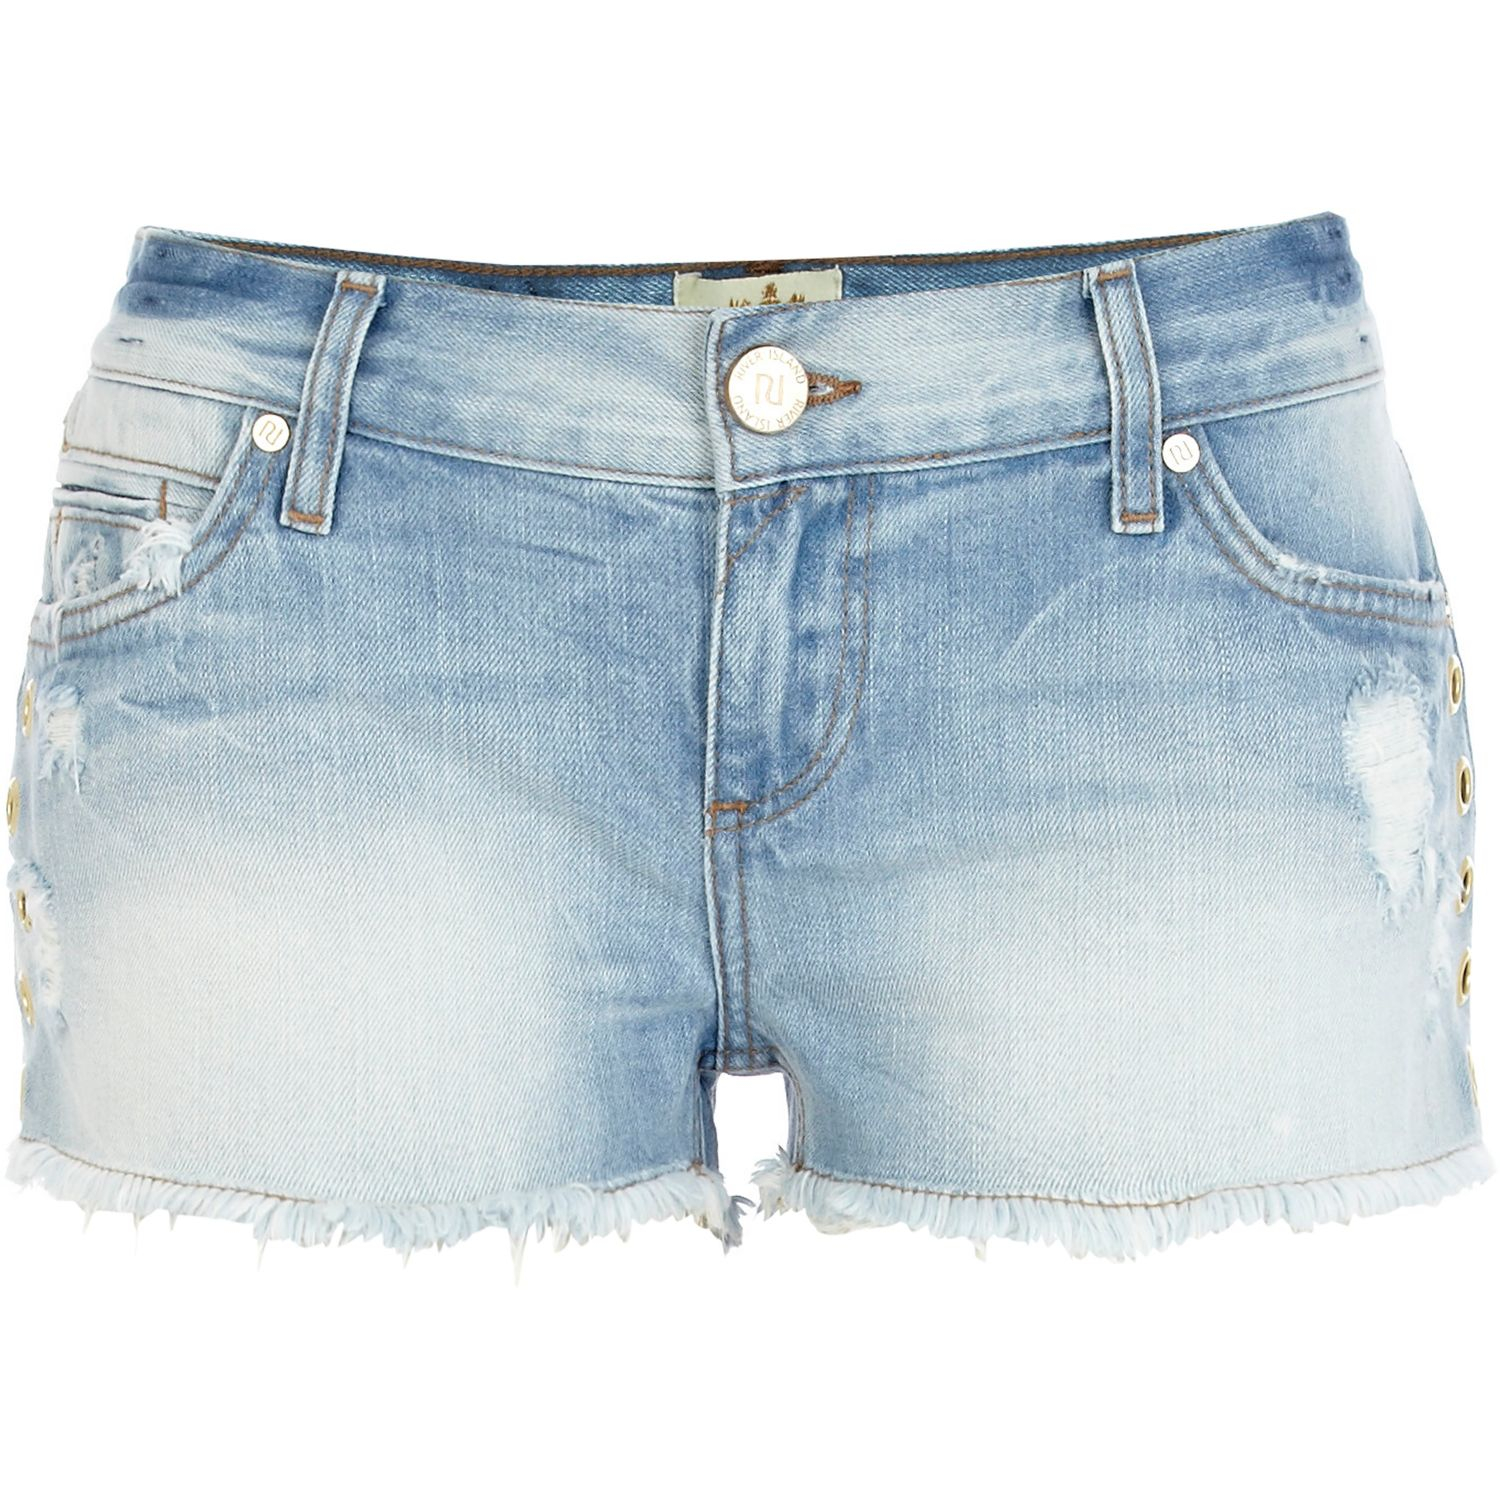 Light Wash Jean Shorts - The Else